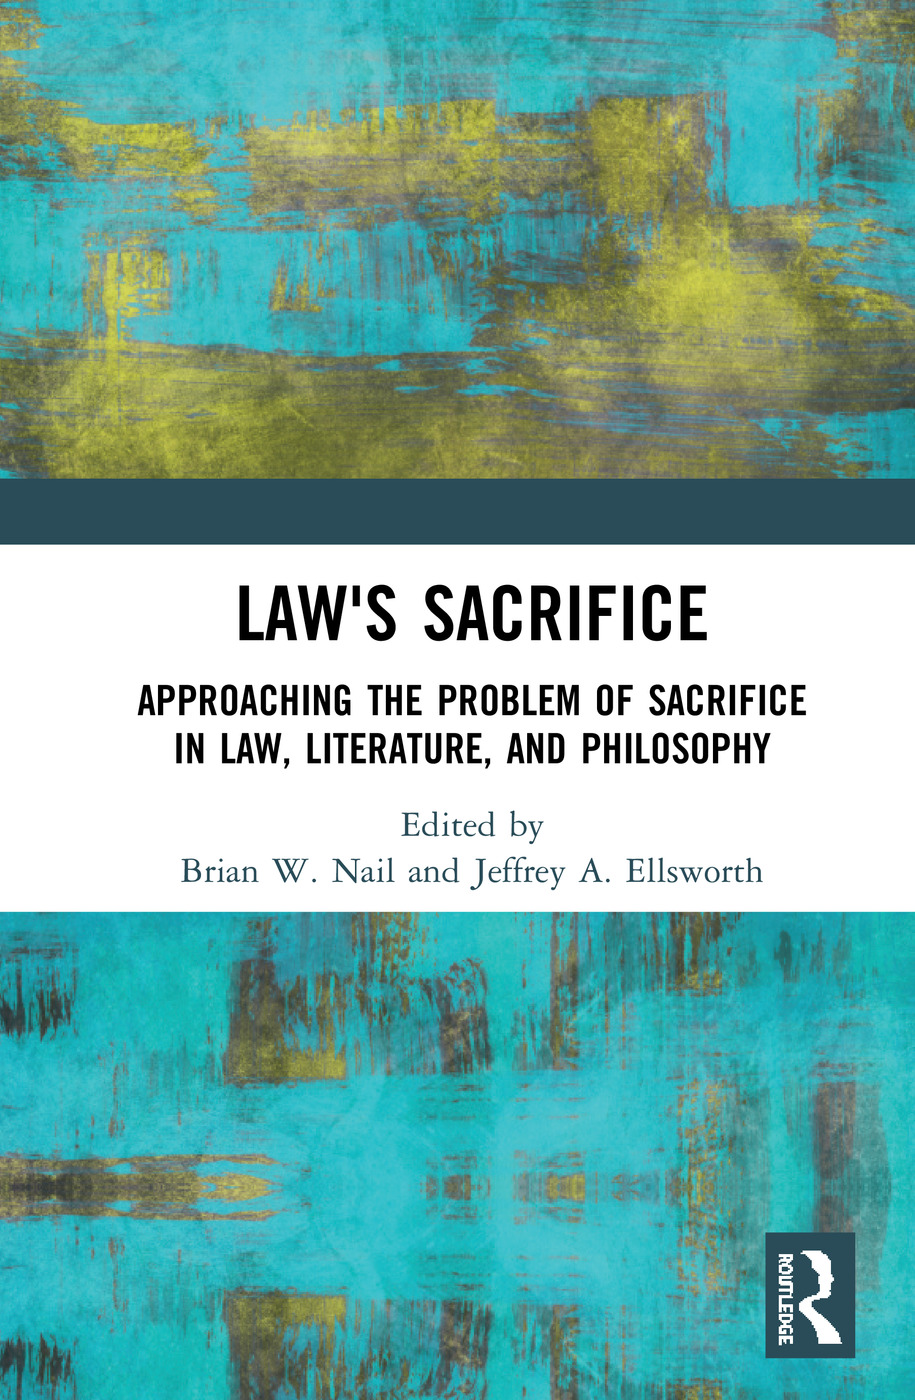 Law's Sacrifice: Approaching the Problem of Sacrifice in Law, Literature, and Philosophy book cover